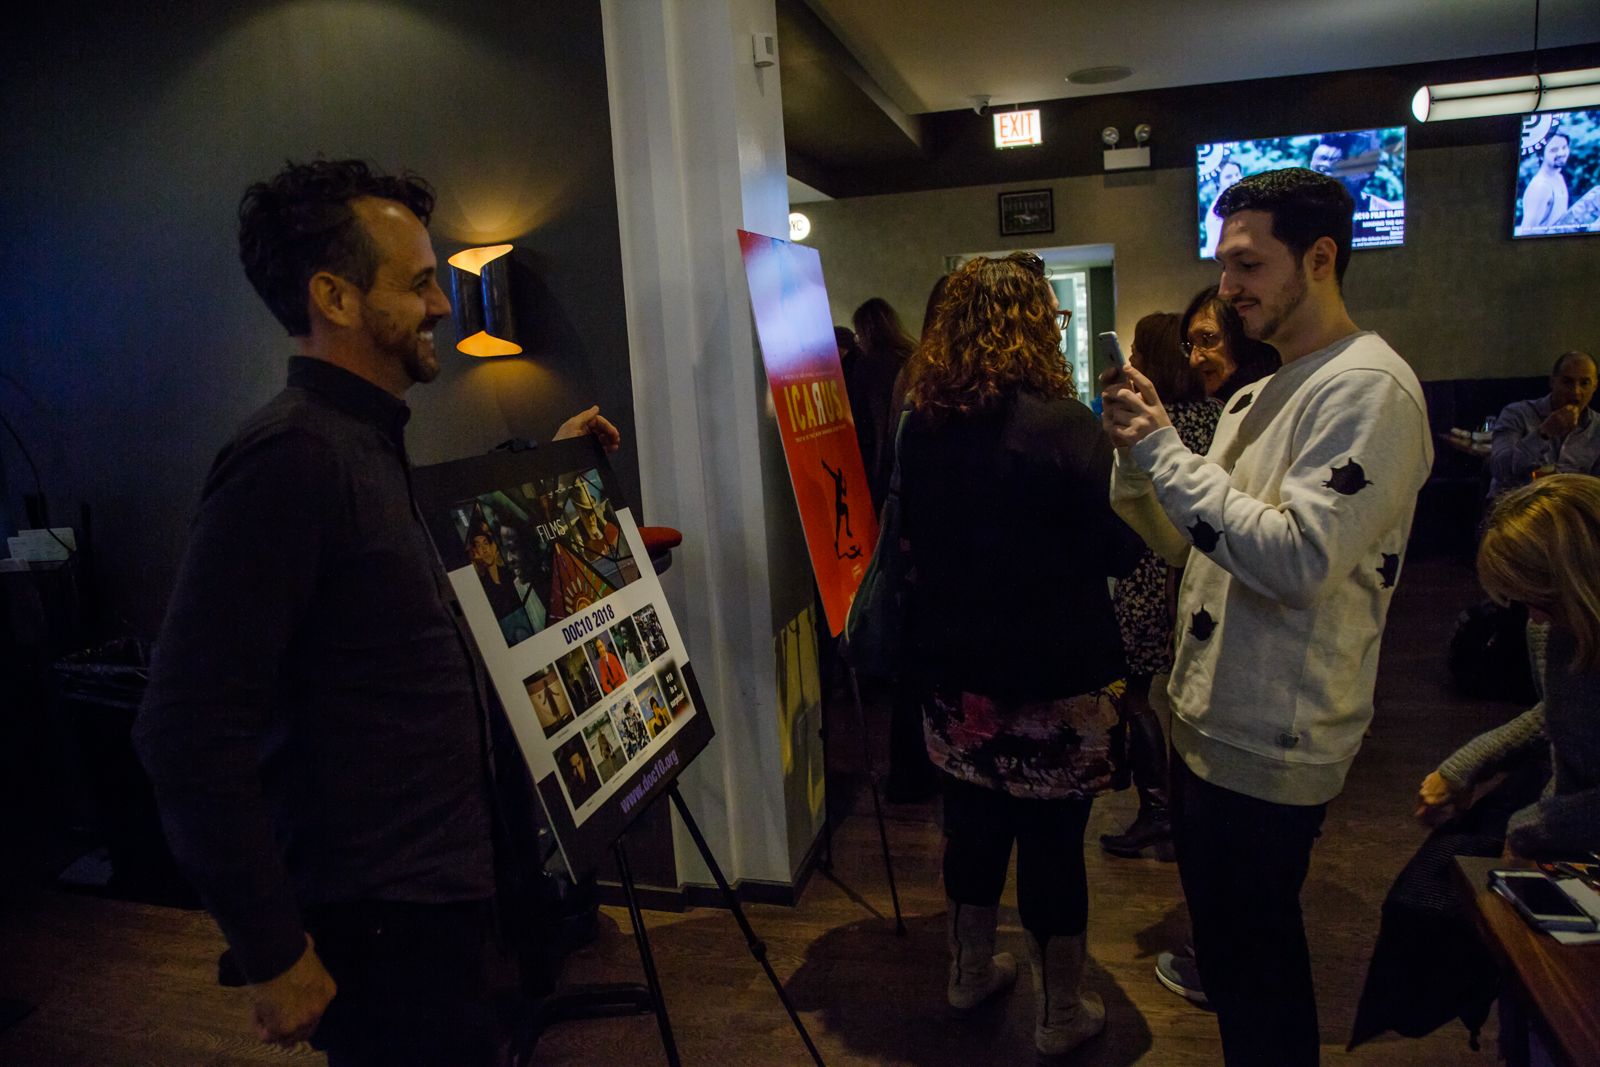 180222-dinner-and-docs-icarus-009.jpg